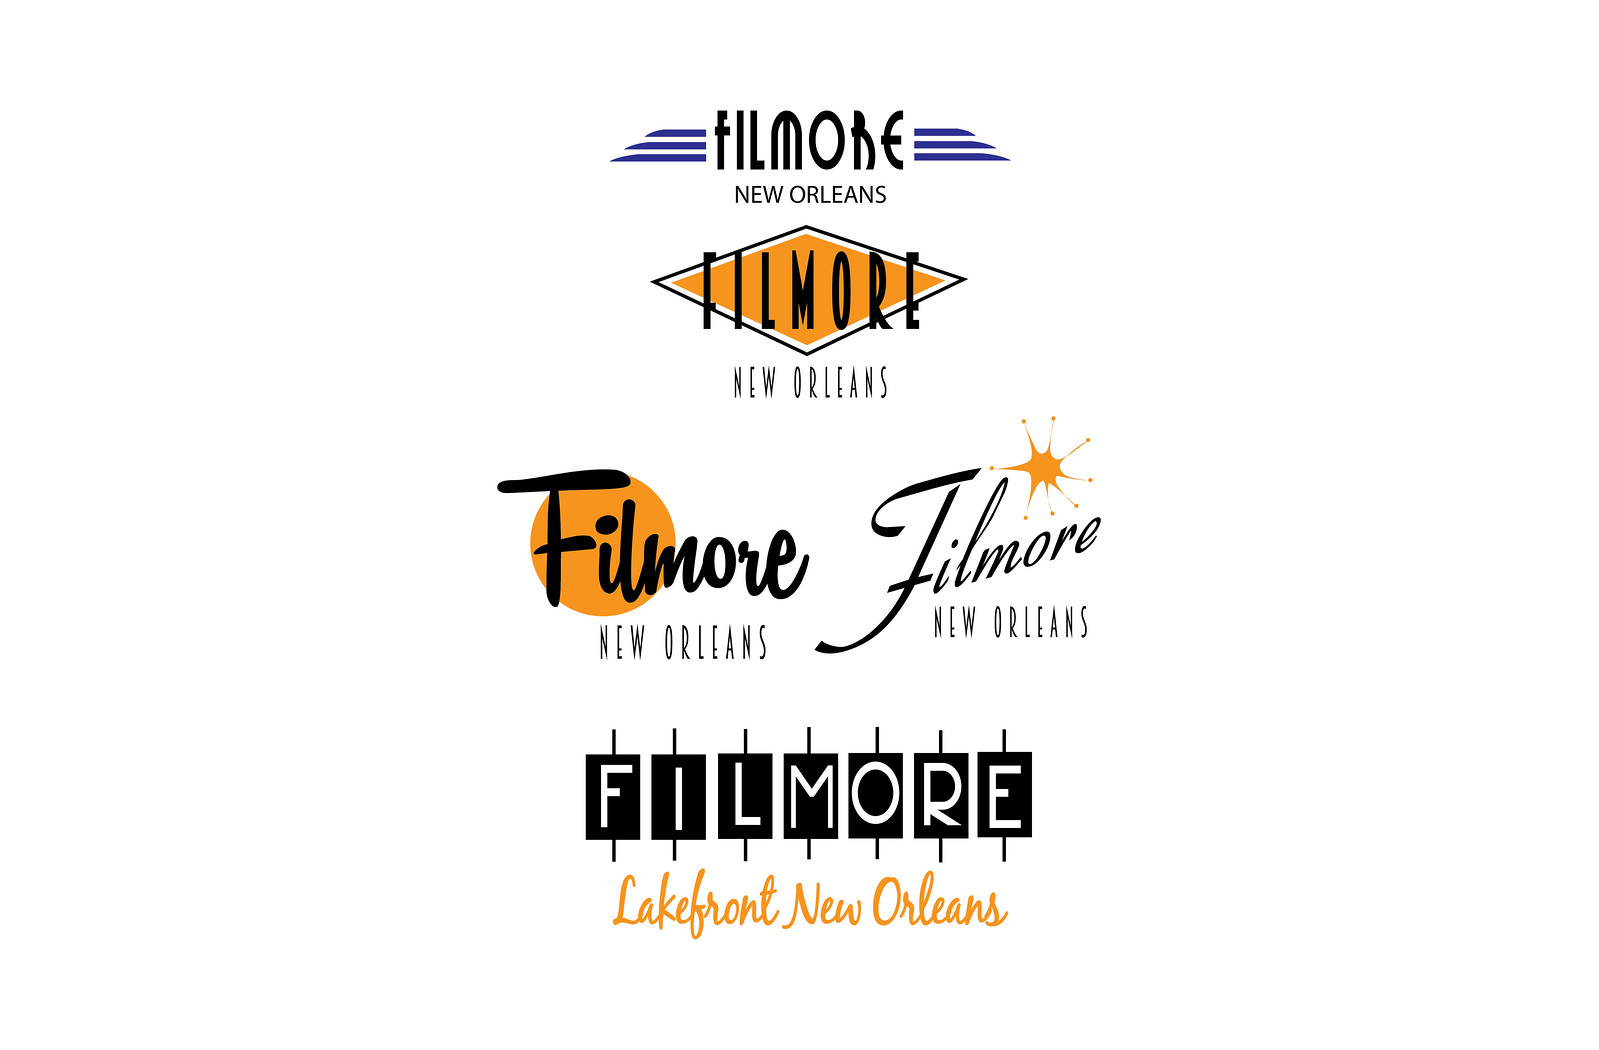 Filmore, Neighborhood Logo, Mid Century Modern Design, Mid century Modern Logo, Filmore Logo, Filmore Brand, Snapchat Fileter, B  E  C  C  A, BECCA studio, New Orleans based Graphic Design, Graphic Design, Brand, Logo, Illustrator, Designer,  BECCA, Becca Studio, becca studio, BECCA studio, Multimedia Design, Graphic Design, Branding, Web Development, Murals, Illustration, Art Direction, BECCA, Becca Studio, becca studio, New Orleans Design, Branding, Web Development, Illustration, Murals, Art Direction